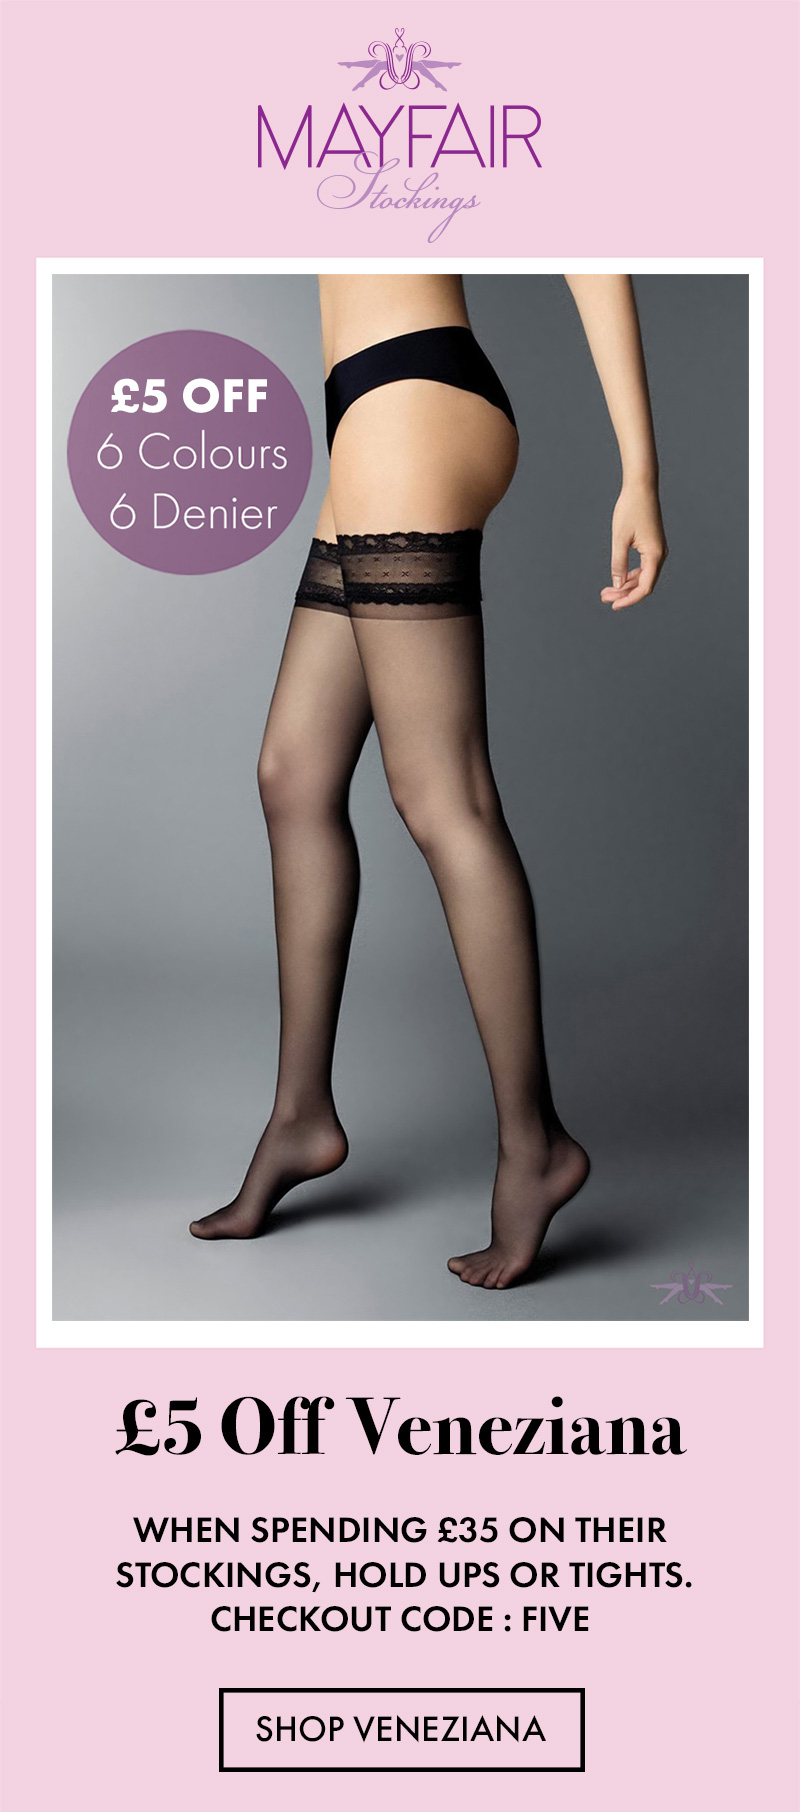 6cc0242c8be Mayfair Stockings  £5 Off Veneziana Stockings and Hold Ups this ...